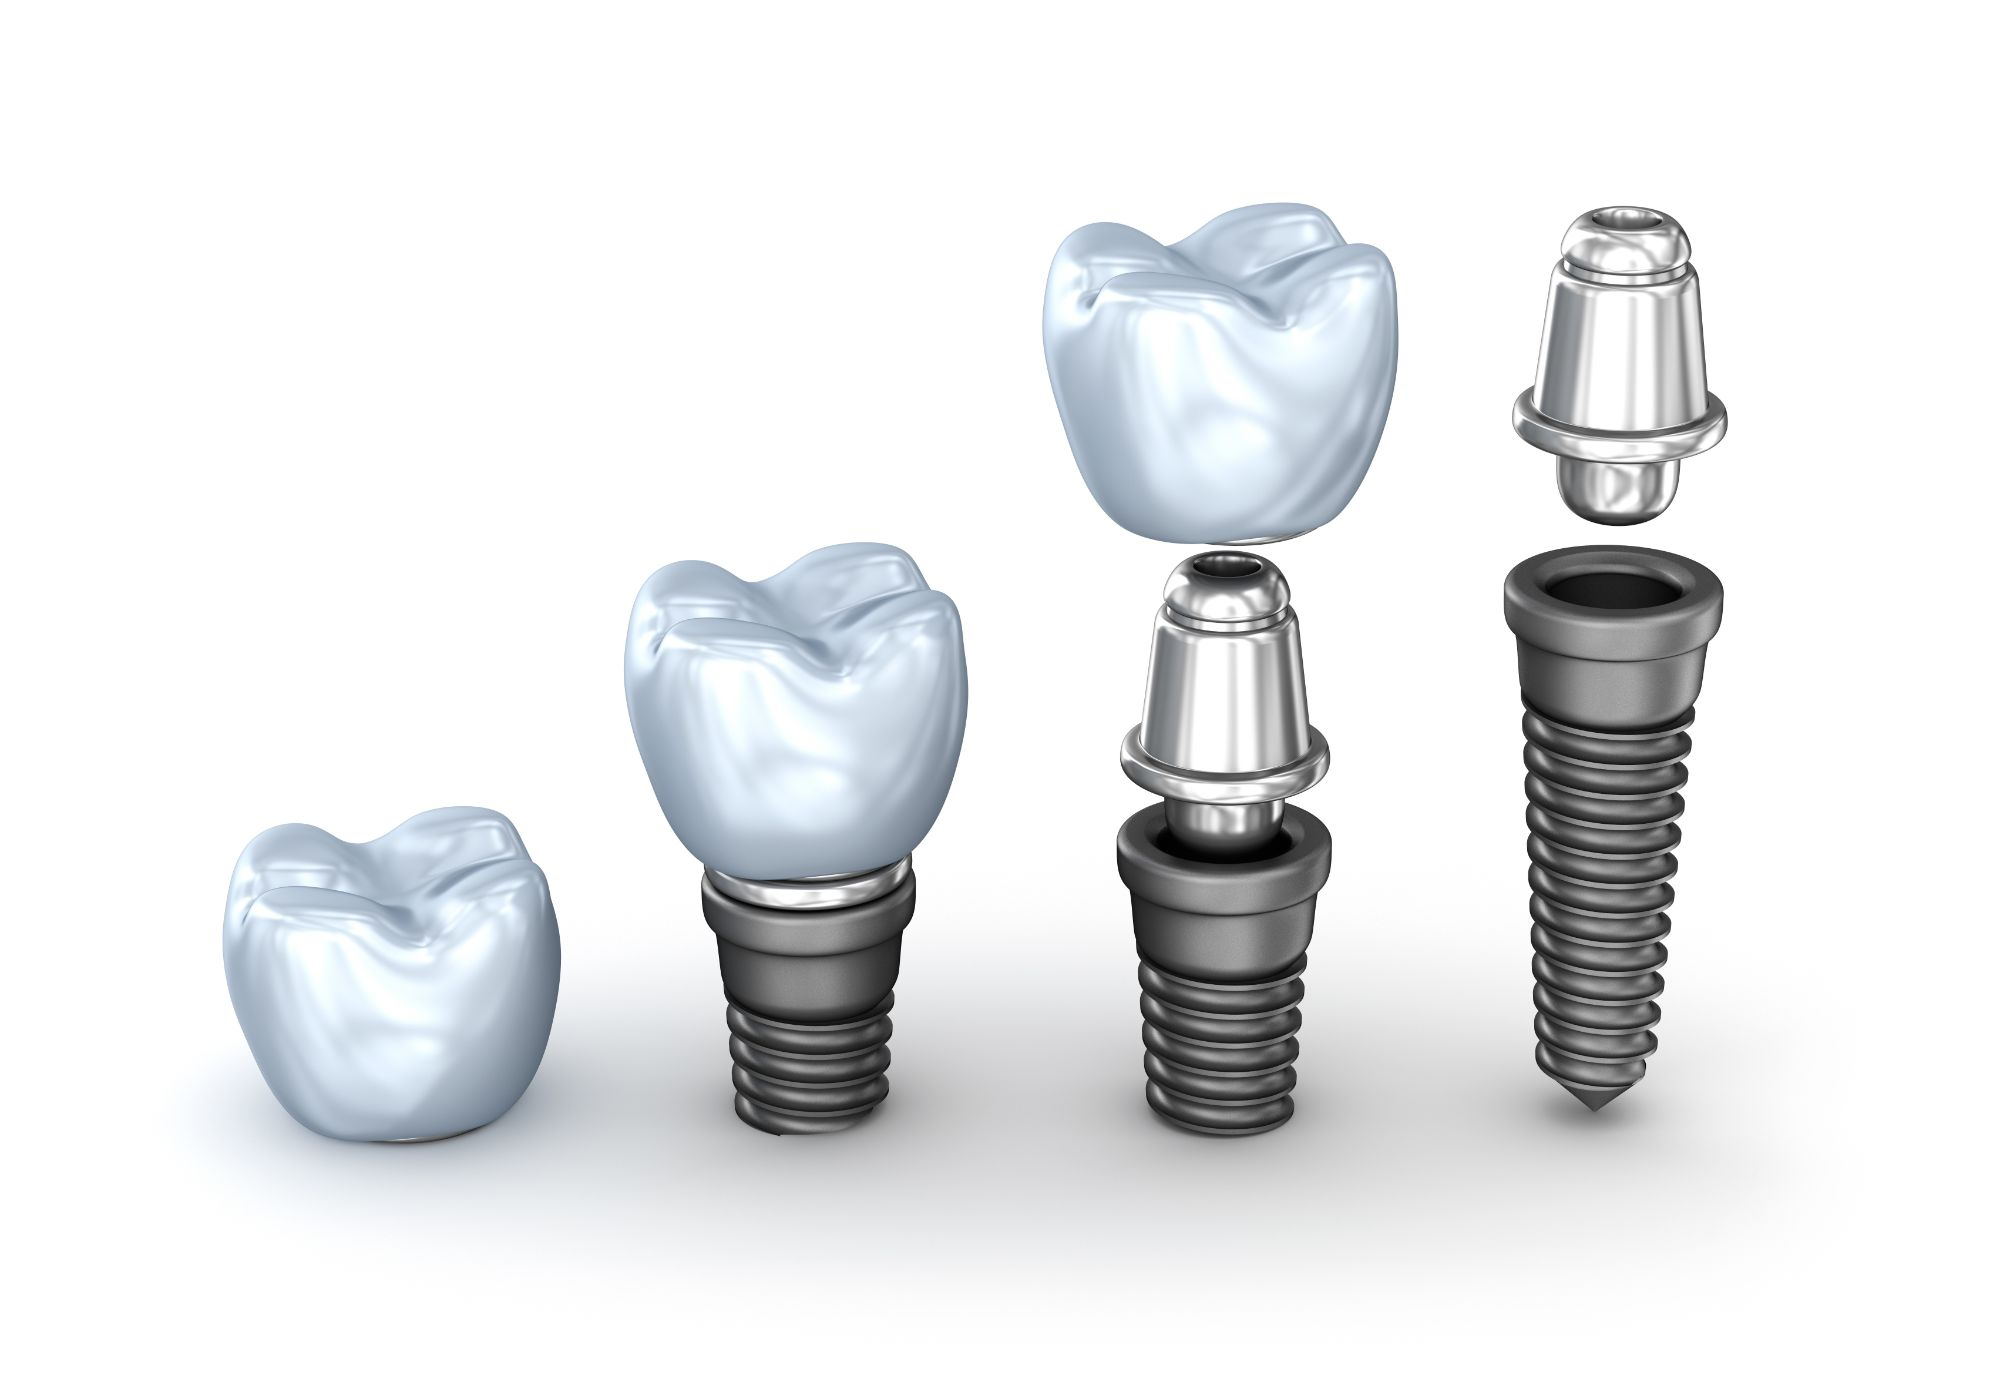 Dental implants replace the need for costly ongoing dental work